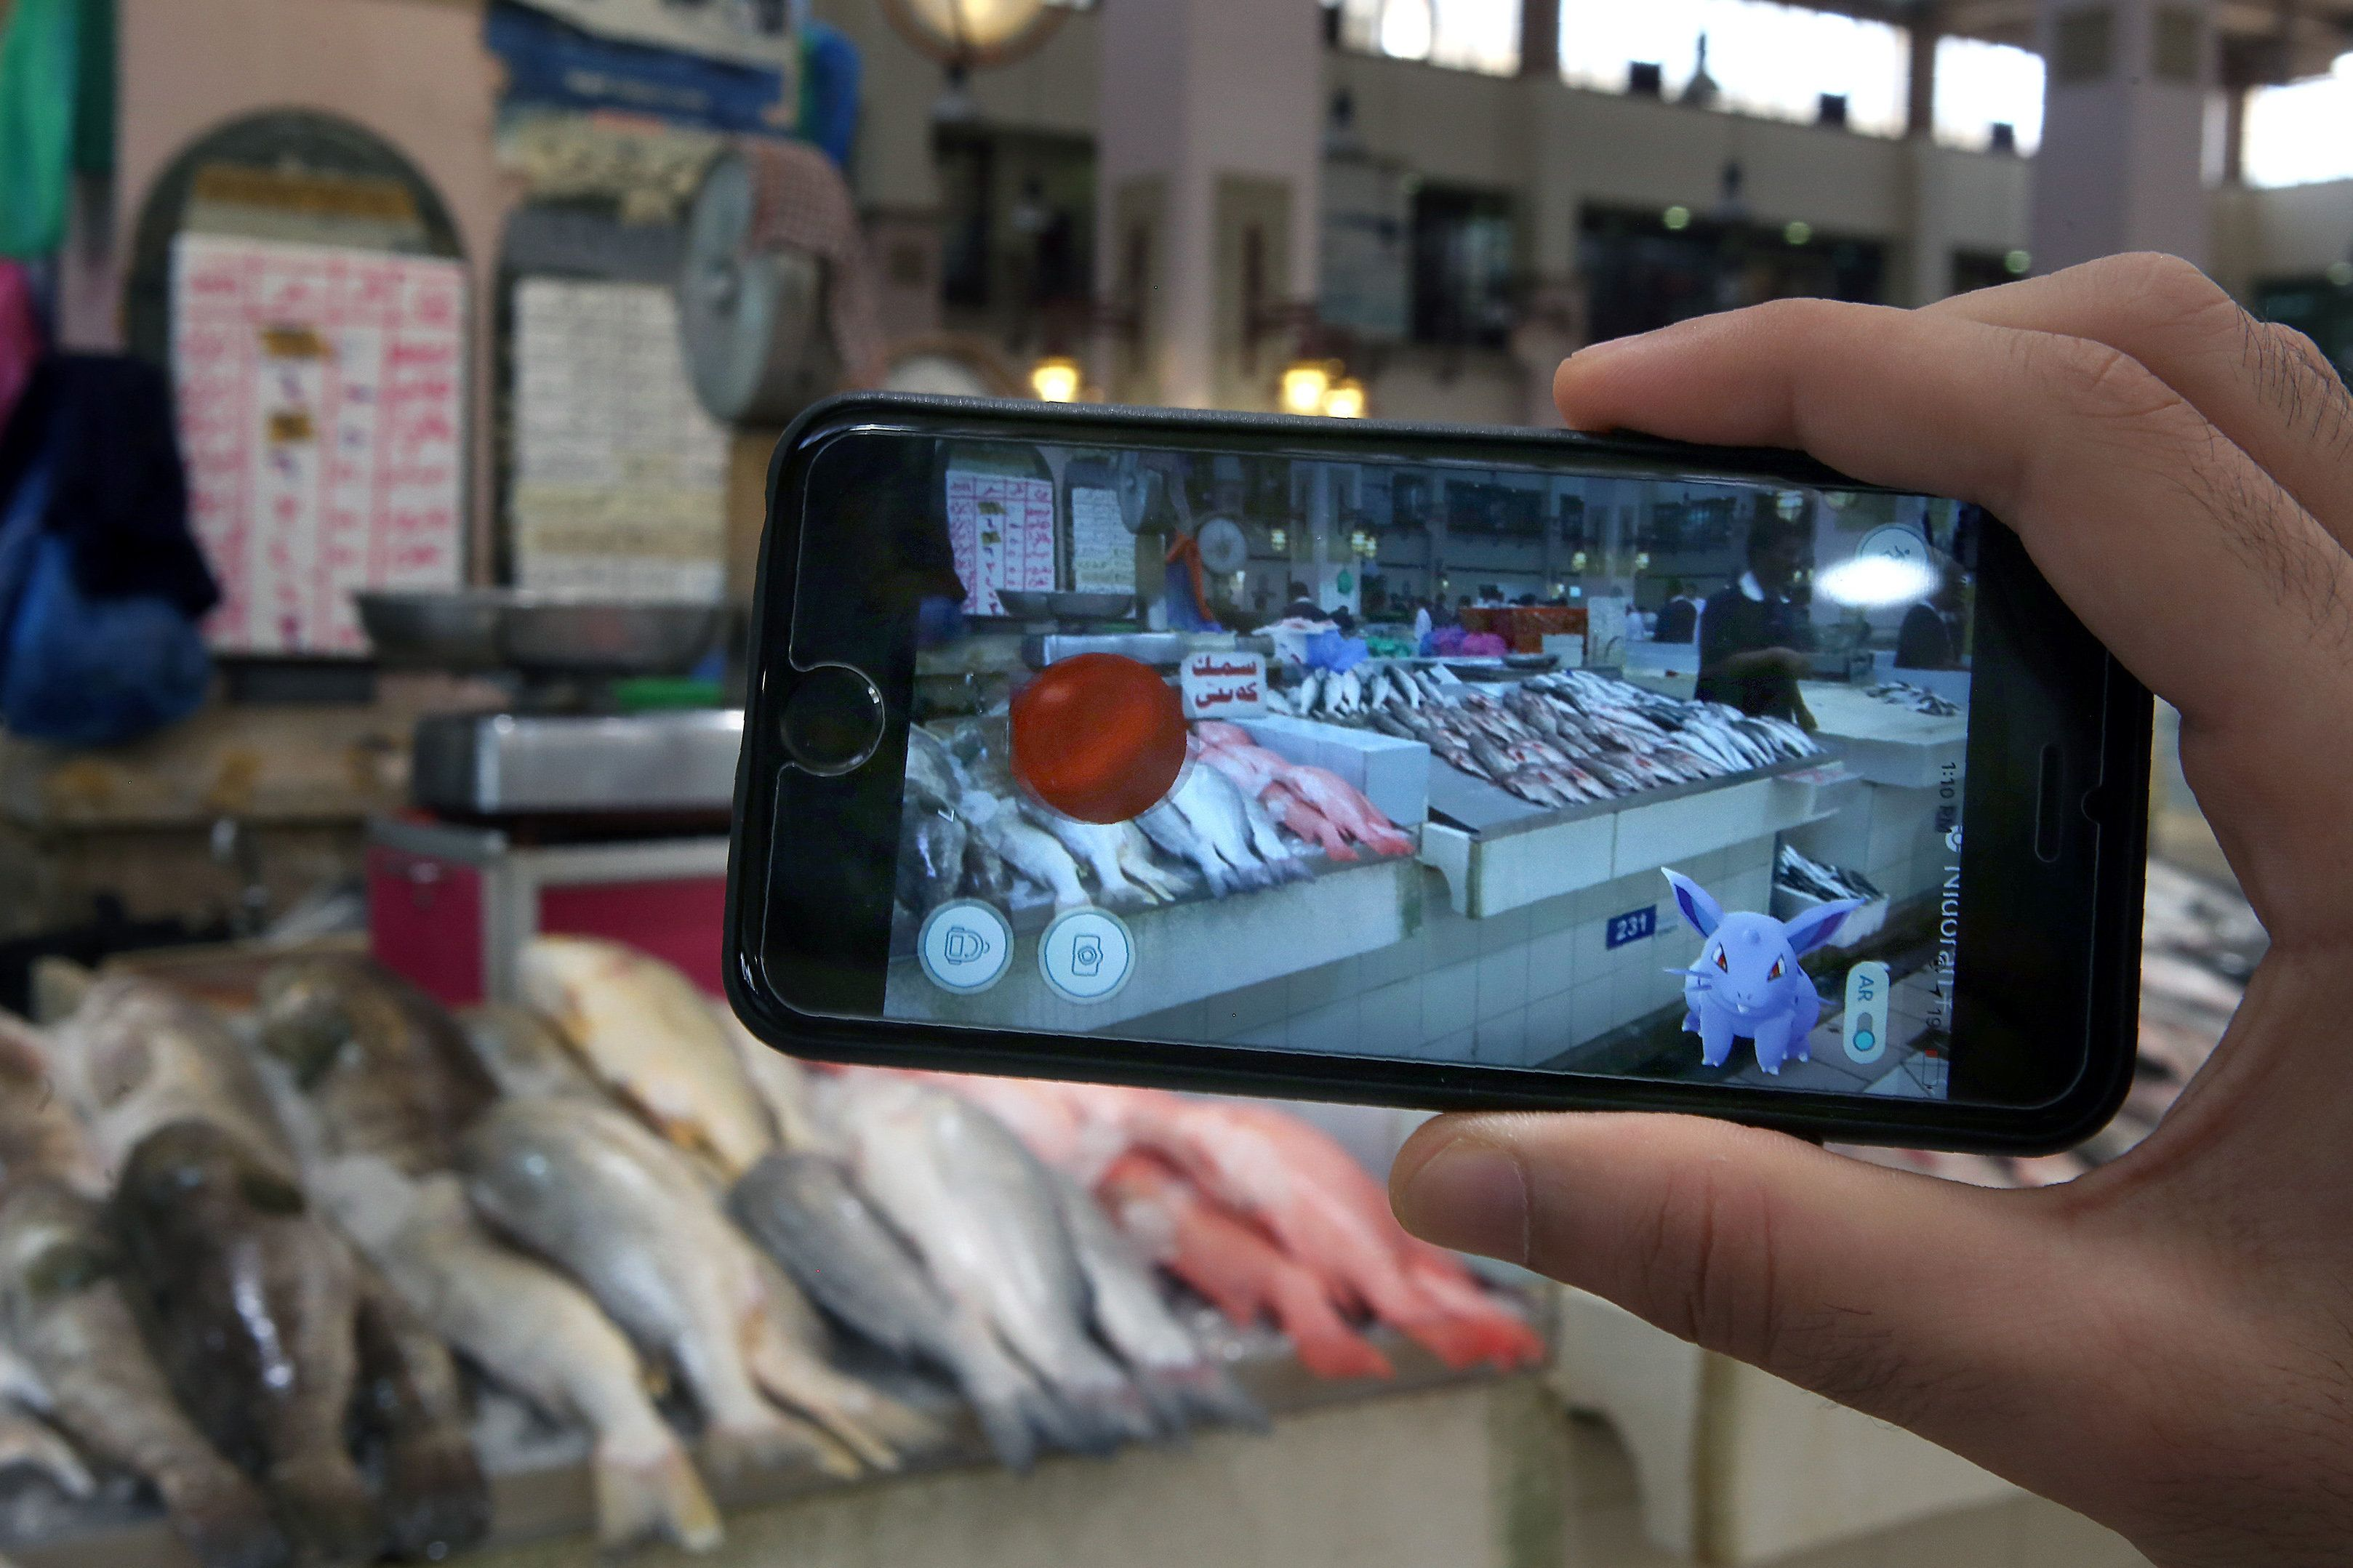 A gamer uses the Pokemon Go application on his mobile in the main fish market in Kuwait City on July 14, 2016.   / AFP / YASSER AL-ZAYYAT        (Photo credit should read YASSER AL-ZAYYAT/AFP/Getty Images)